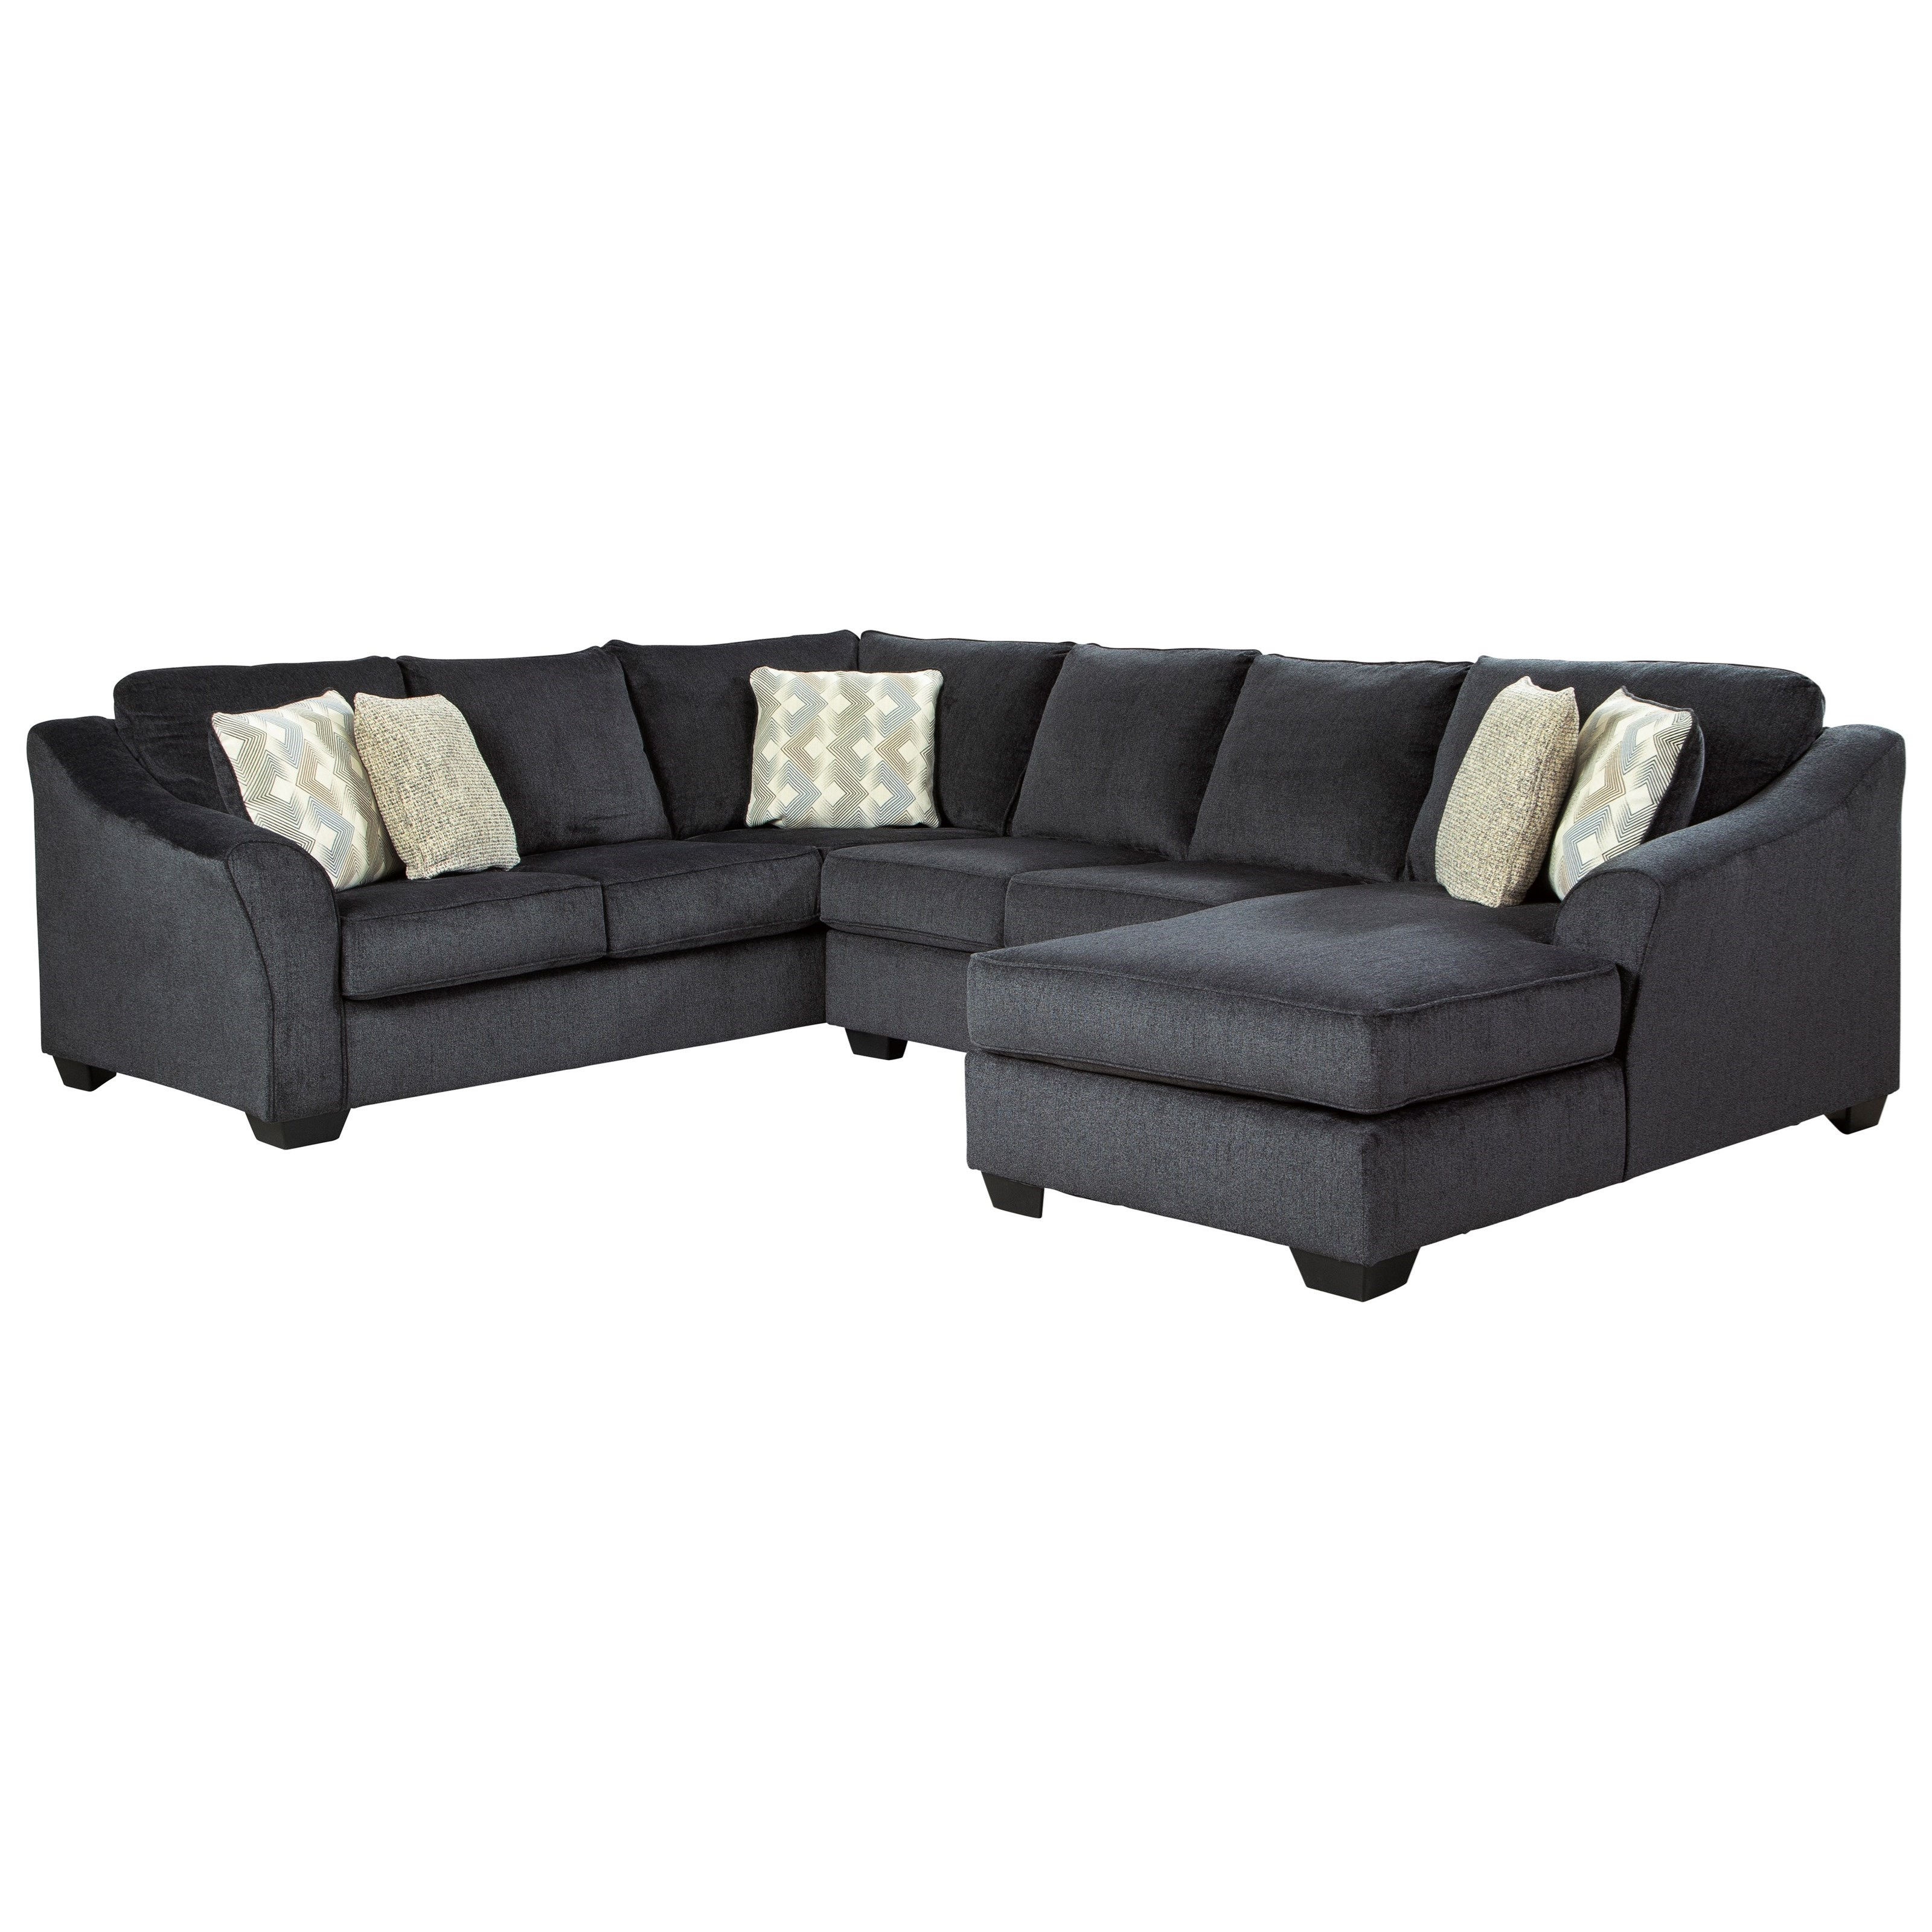 Eltmann 3-Piece Sectional by Signature at Walker's Furniture